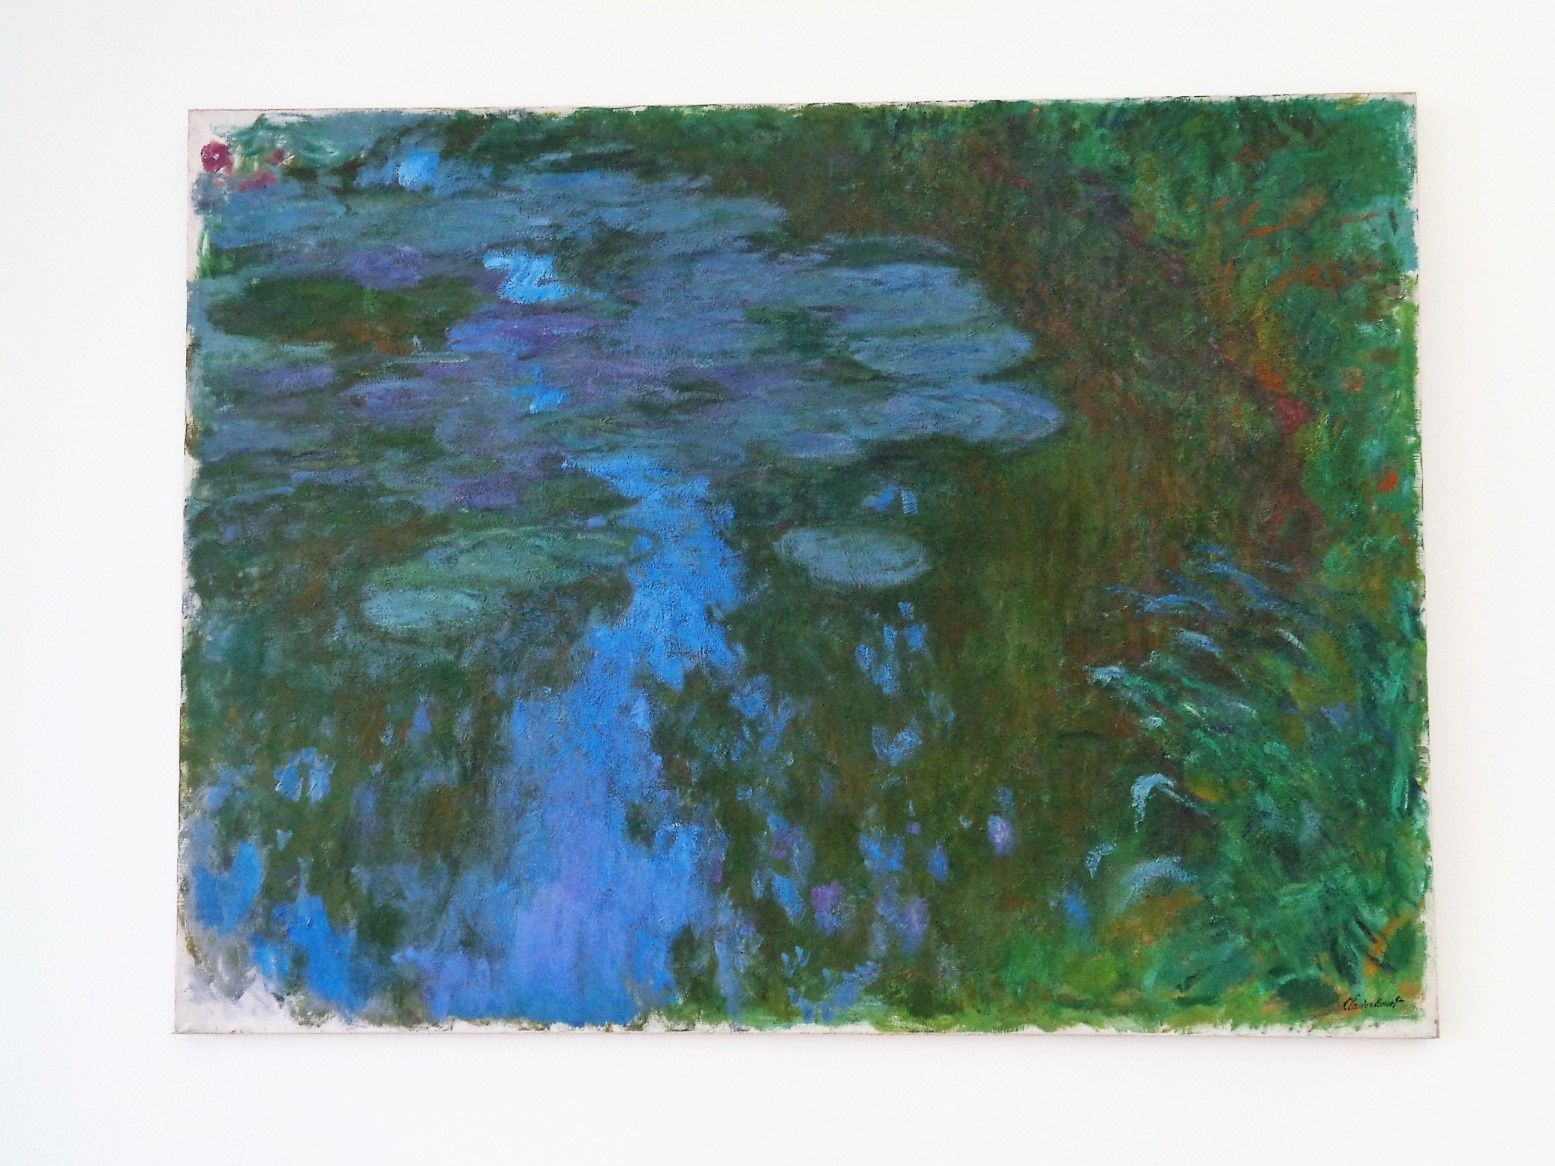 Nymphéas - Claude Monet - 1917